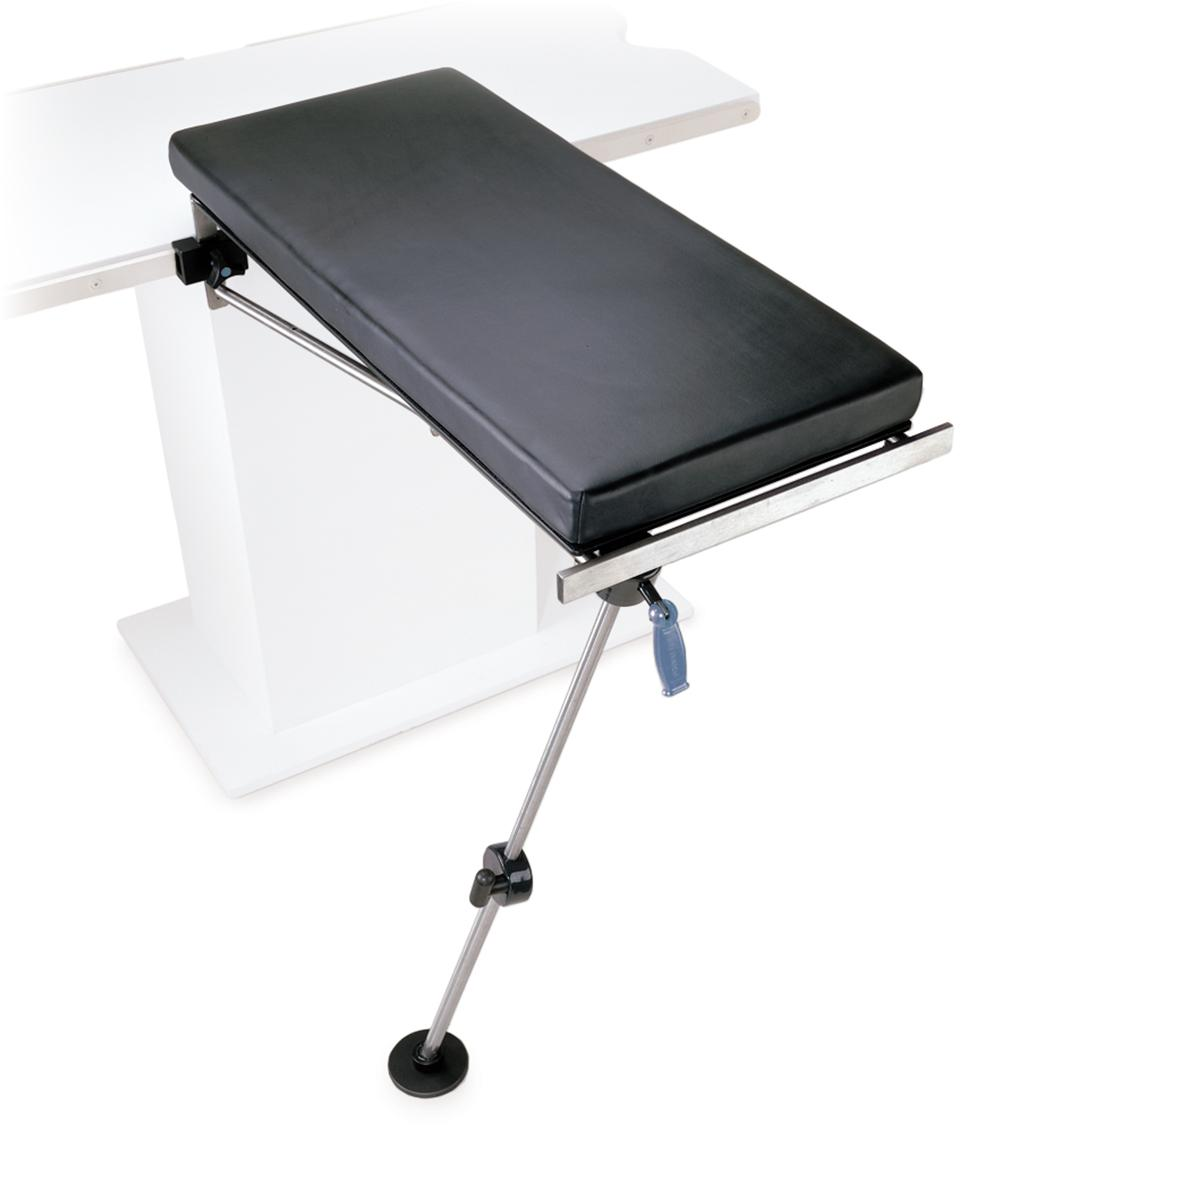 Basic Rectangular Table, #O-AHTR, attached to OR table